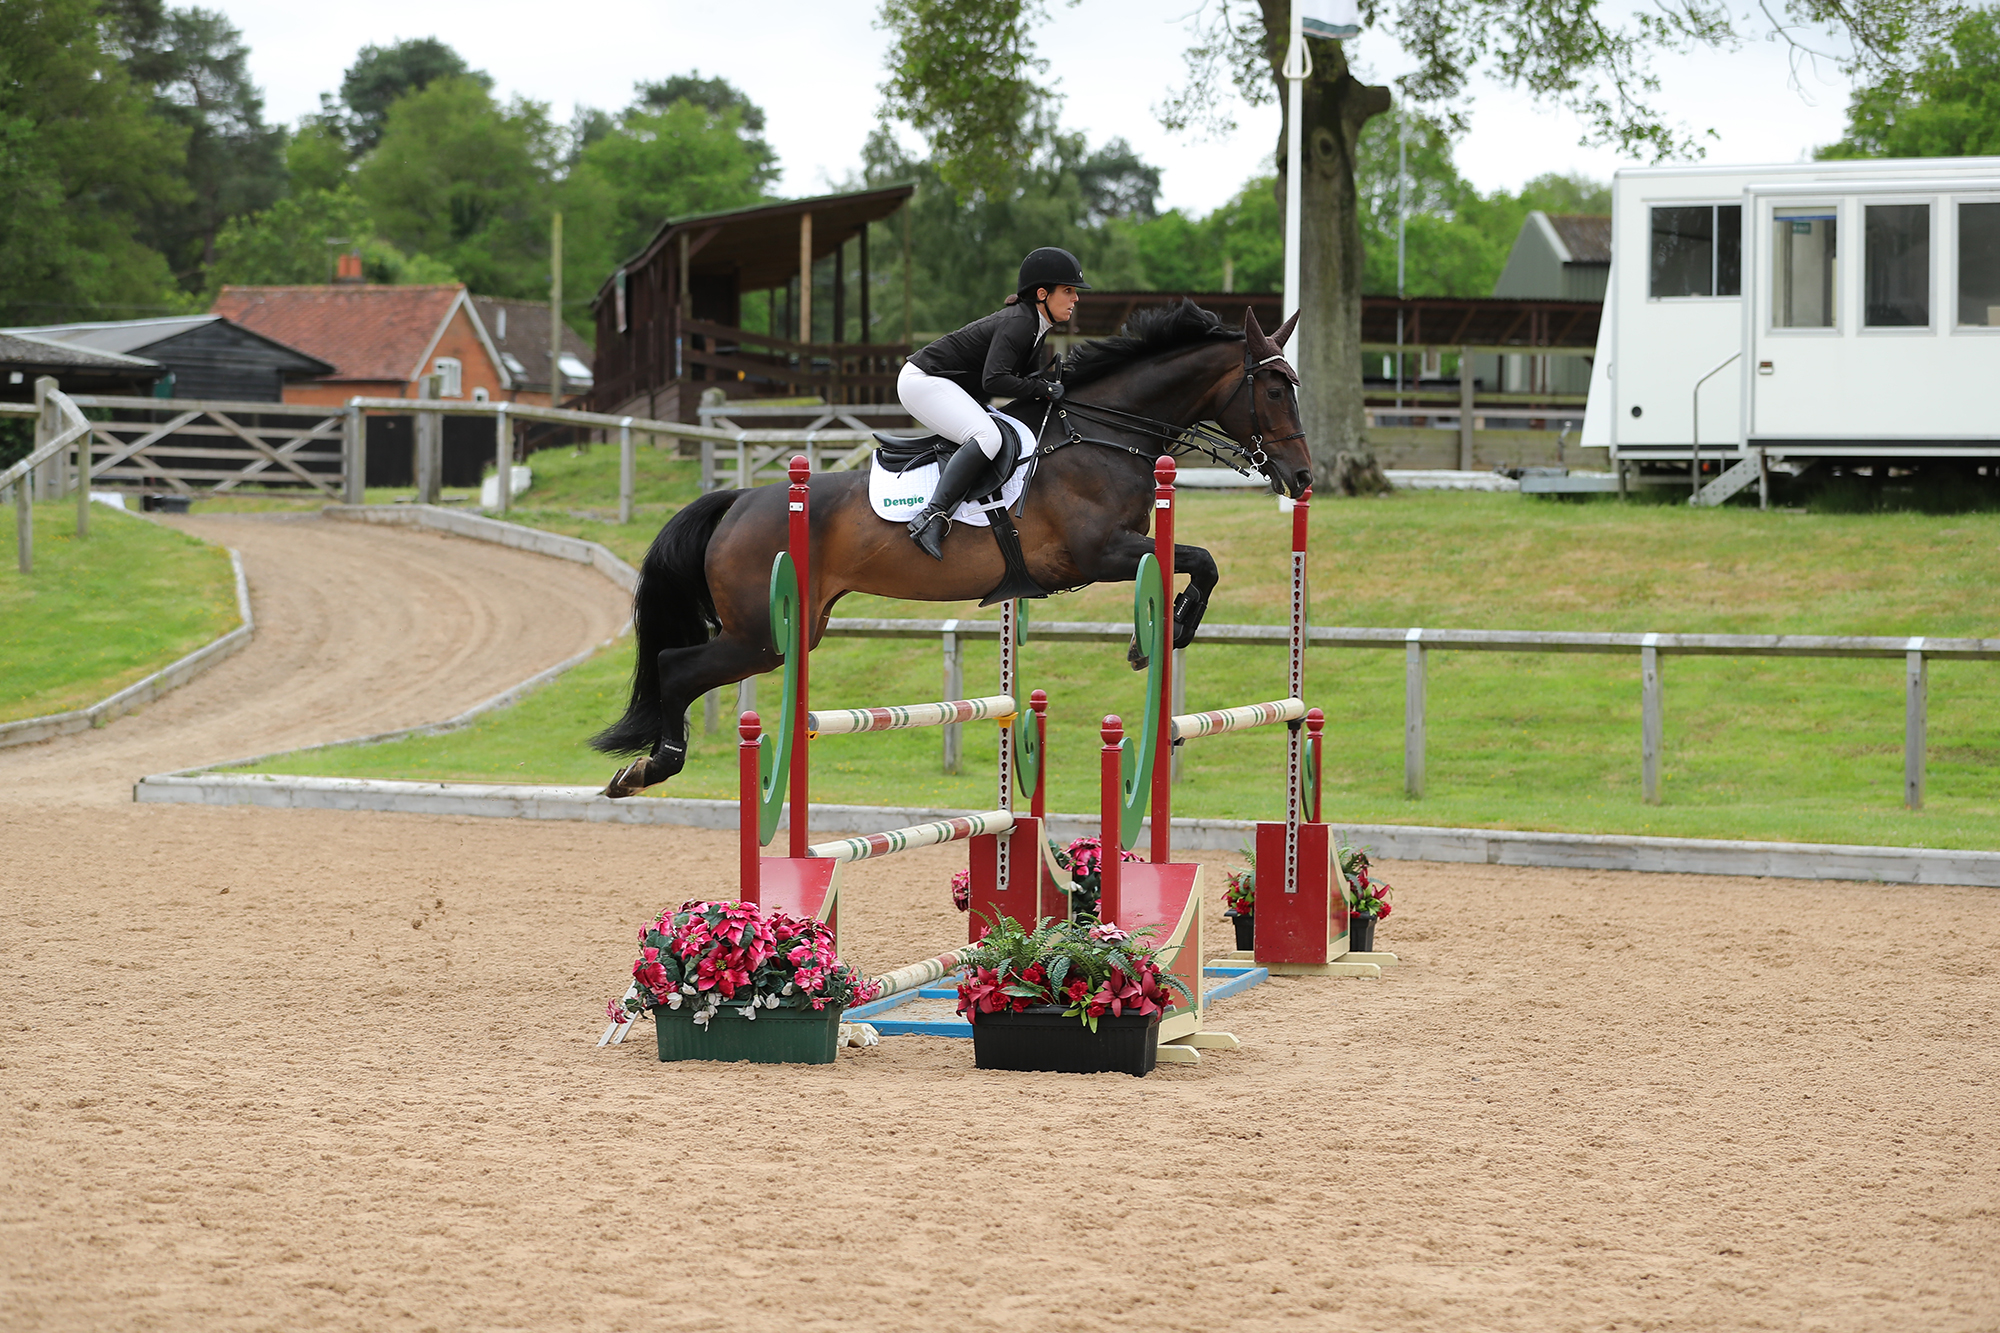 Sam Backstrom and Connie jumping at Wellington